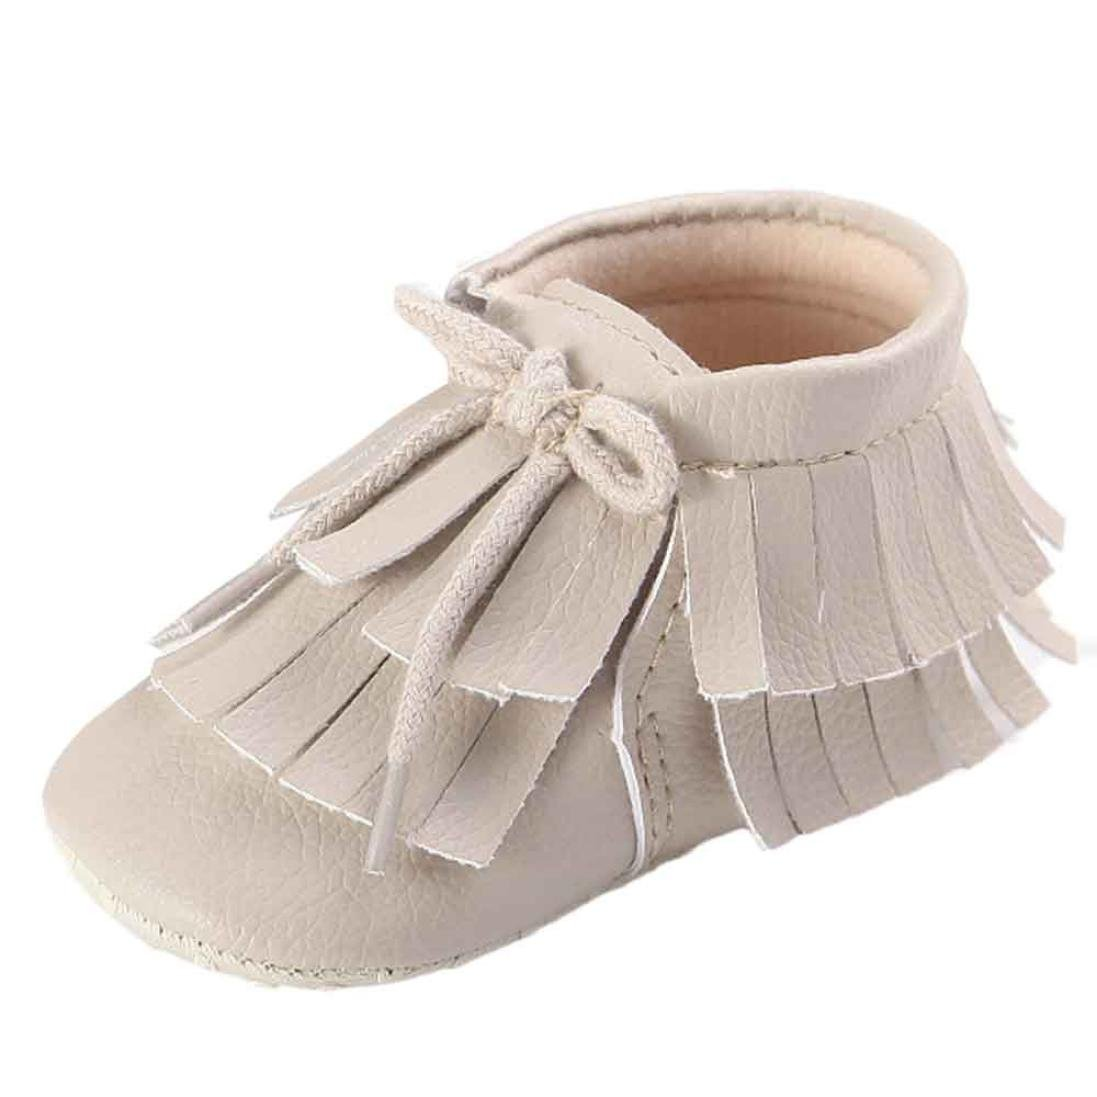 Voberry Toddler Baby Girls Boys Sneaker Toddler Double-Deck Tassels Lace up Moccasins